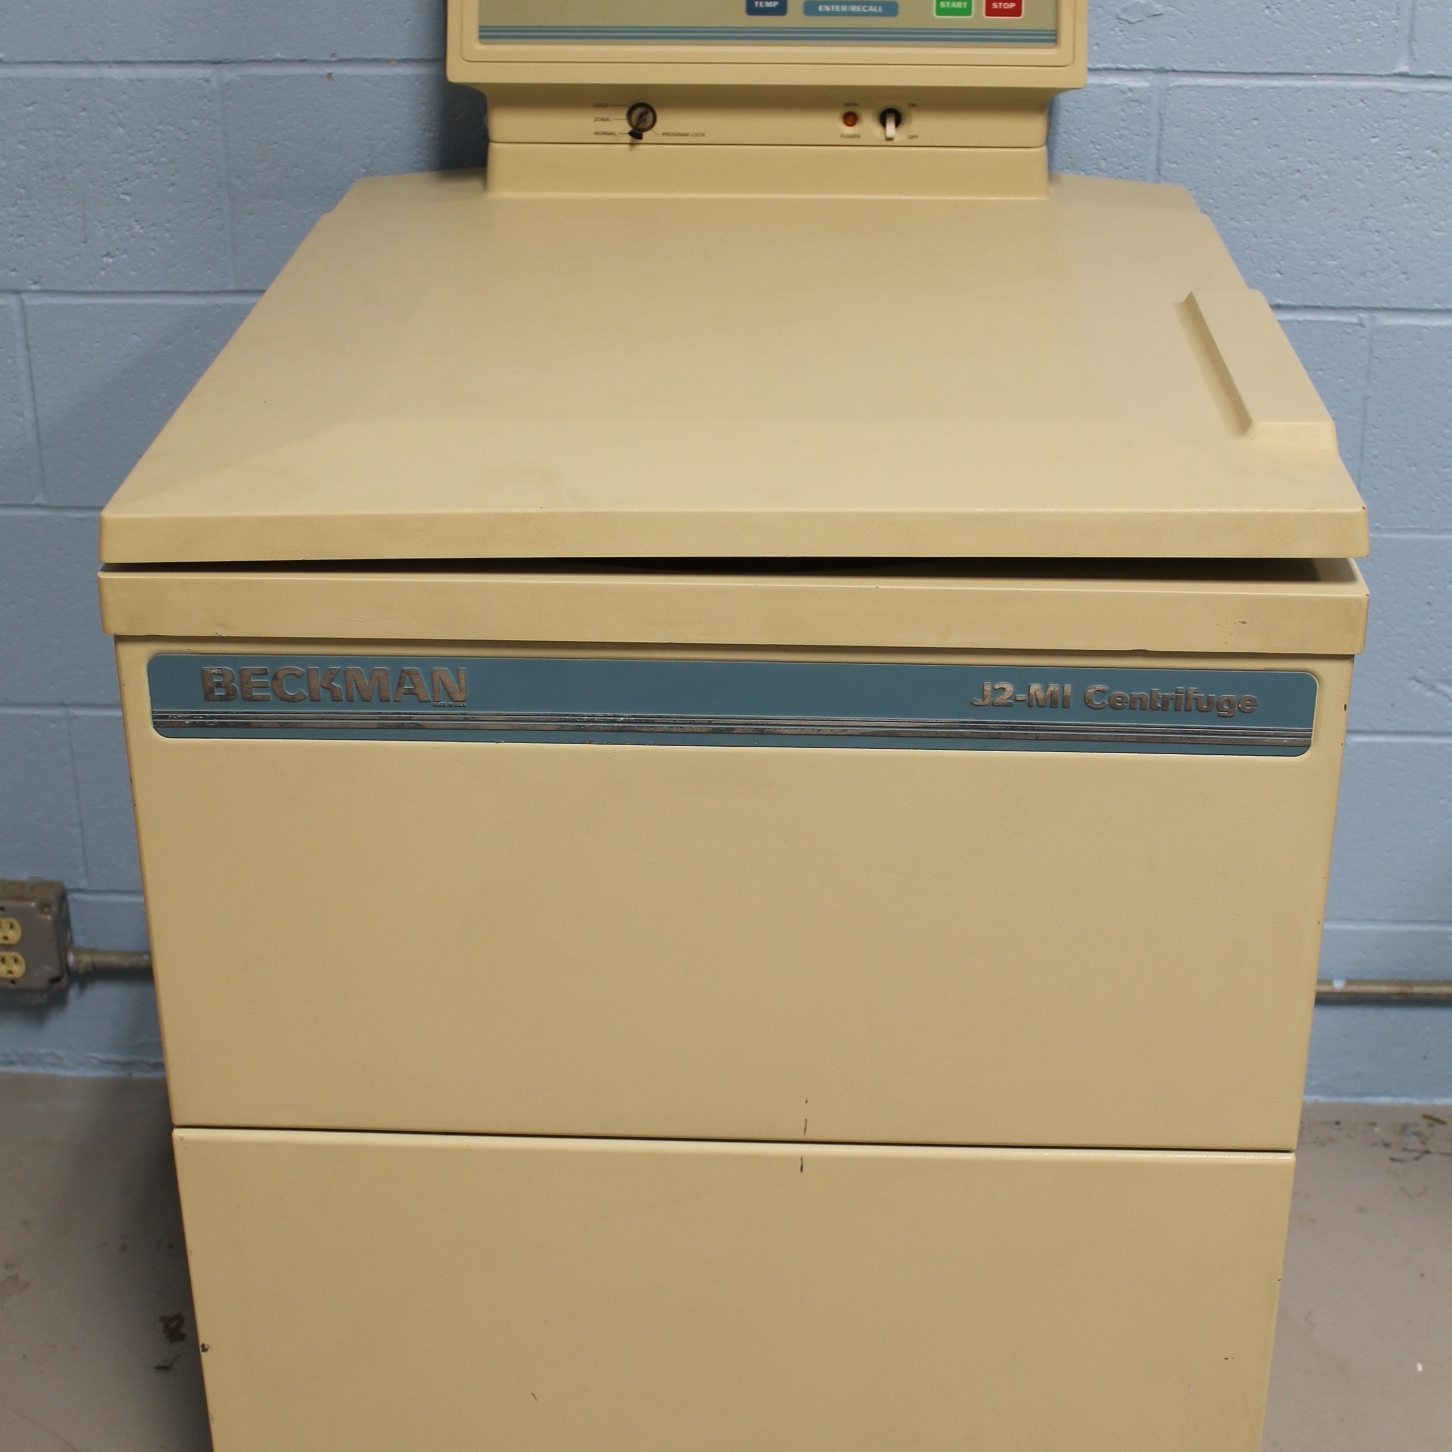 Beckman J2-MI High Speed Floor Centrifuge Image